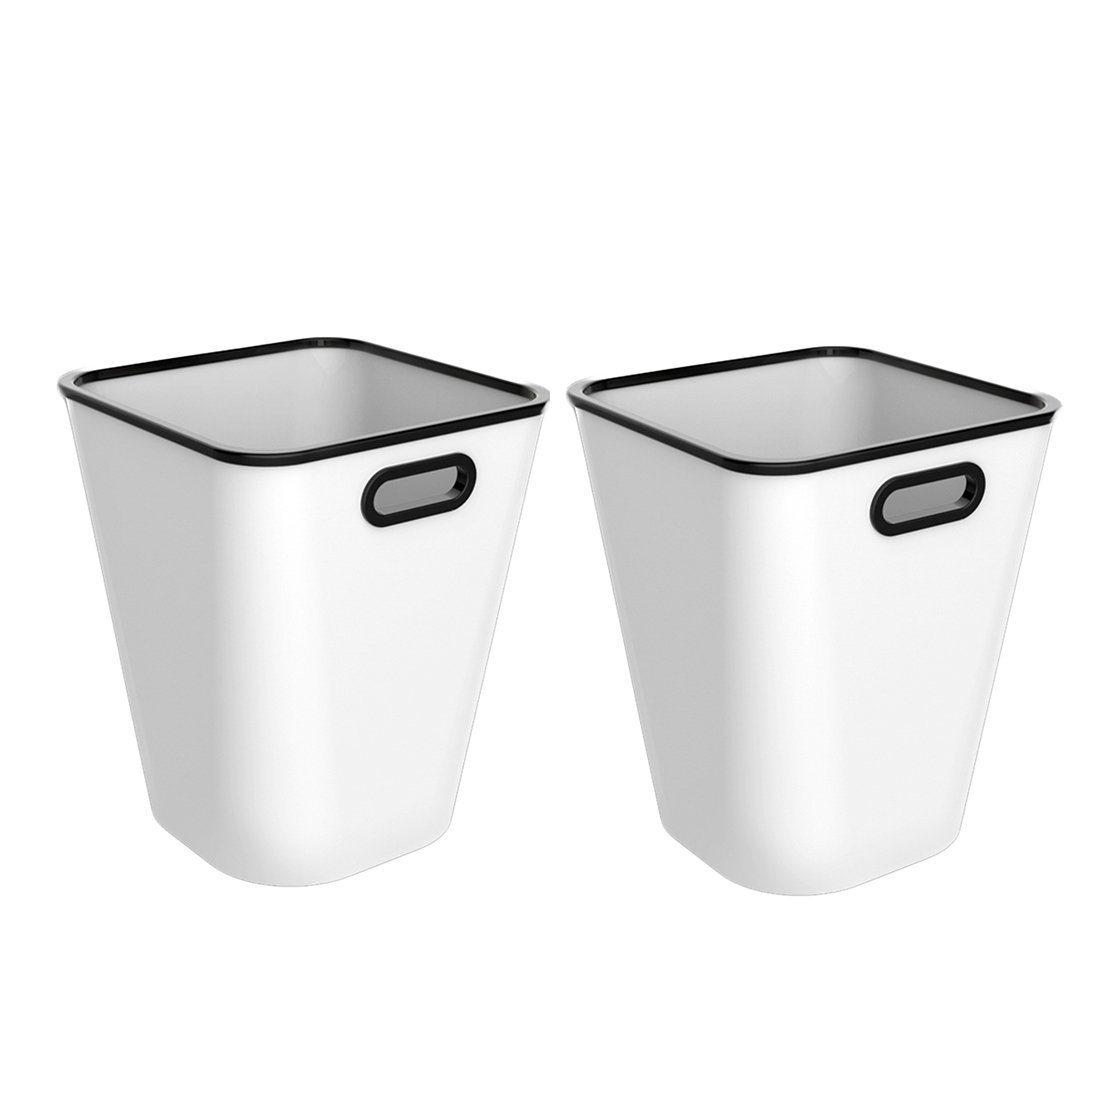 XSHION Trash Can Set of 2, Plastic Waste Paper Basket for Office/Recycle Bins for Home Wastebasket 4 Gallon (White)